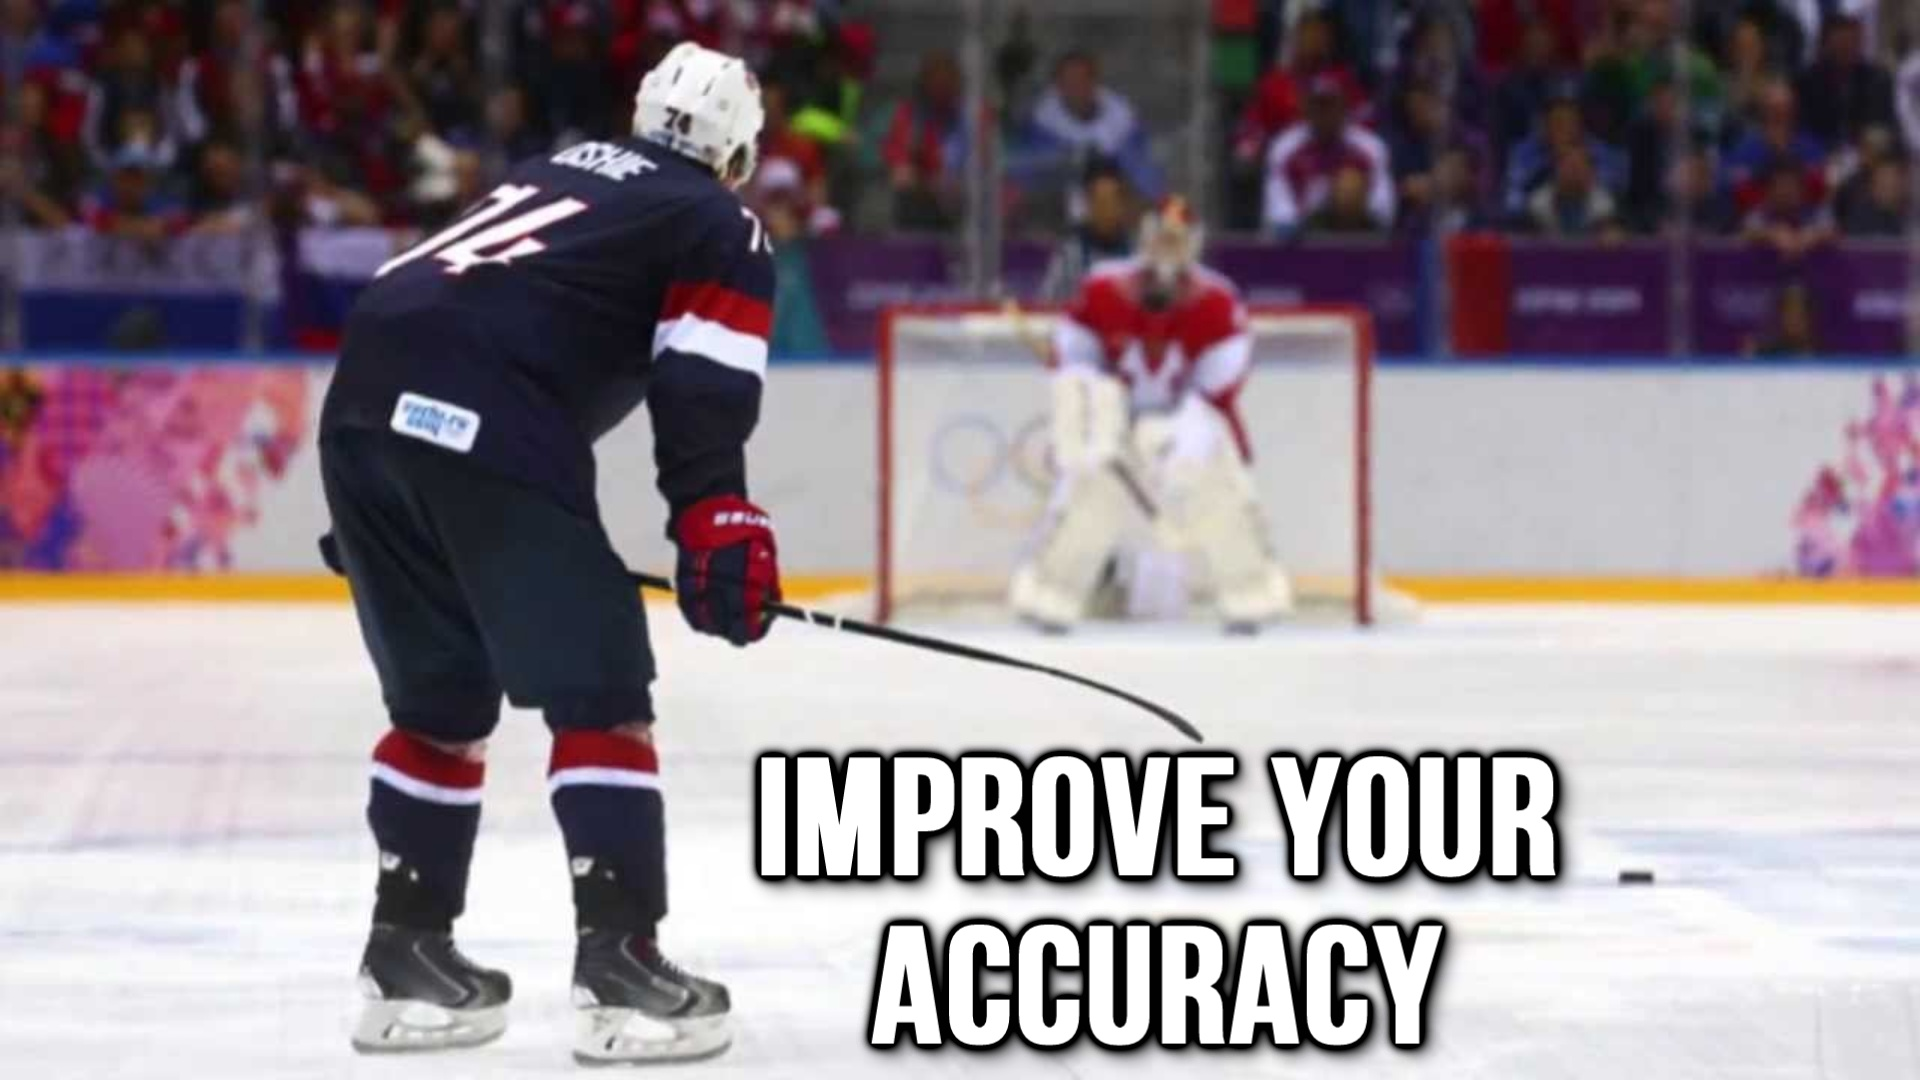 4 Tips to Improve Your Accuracy